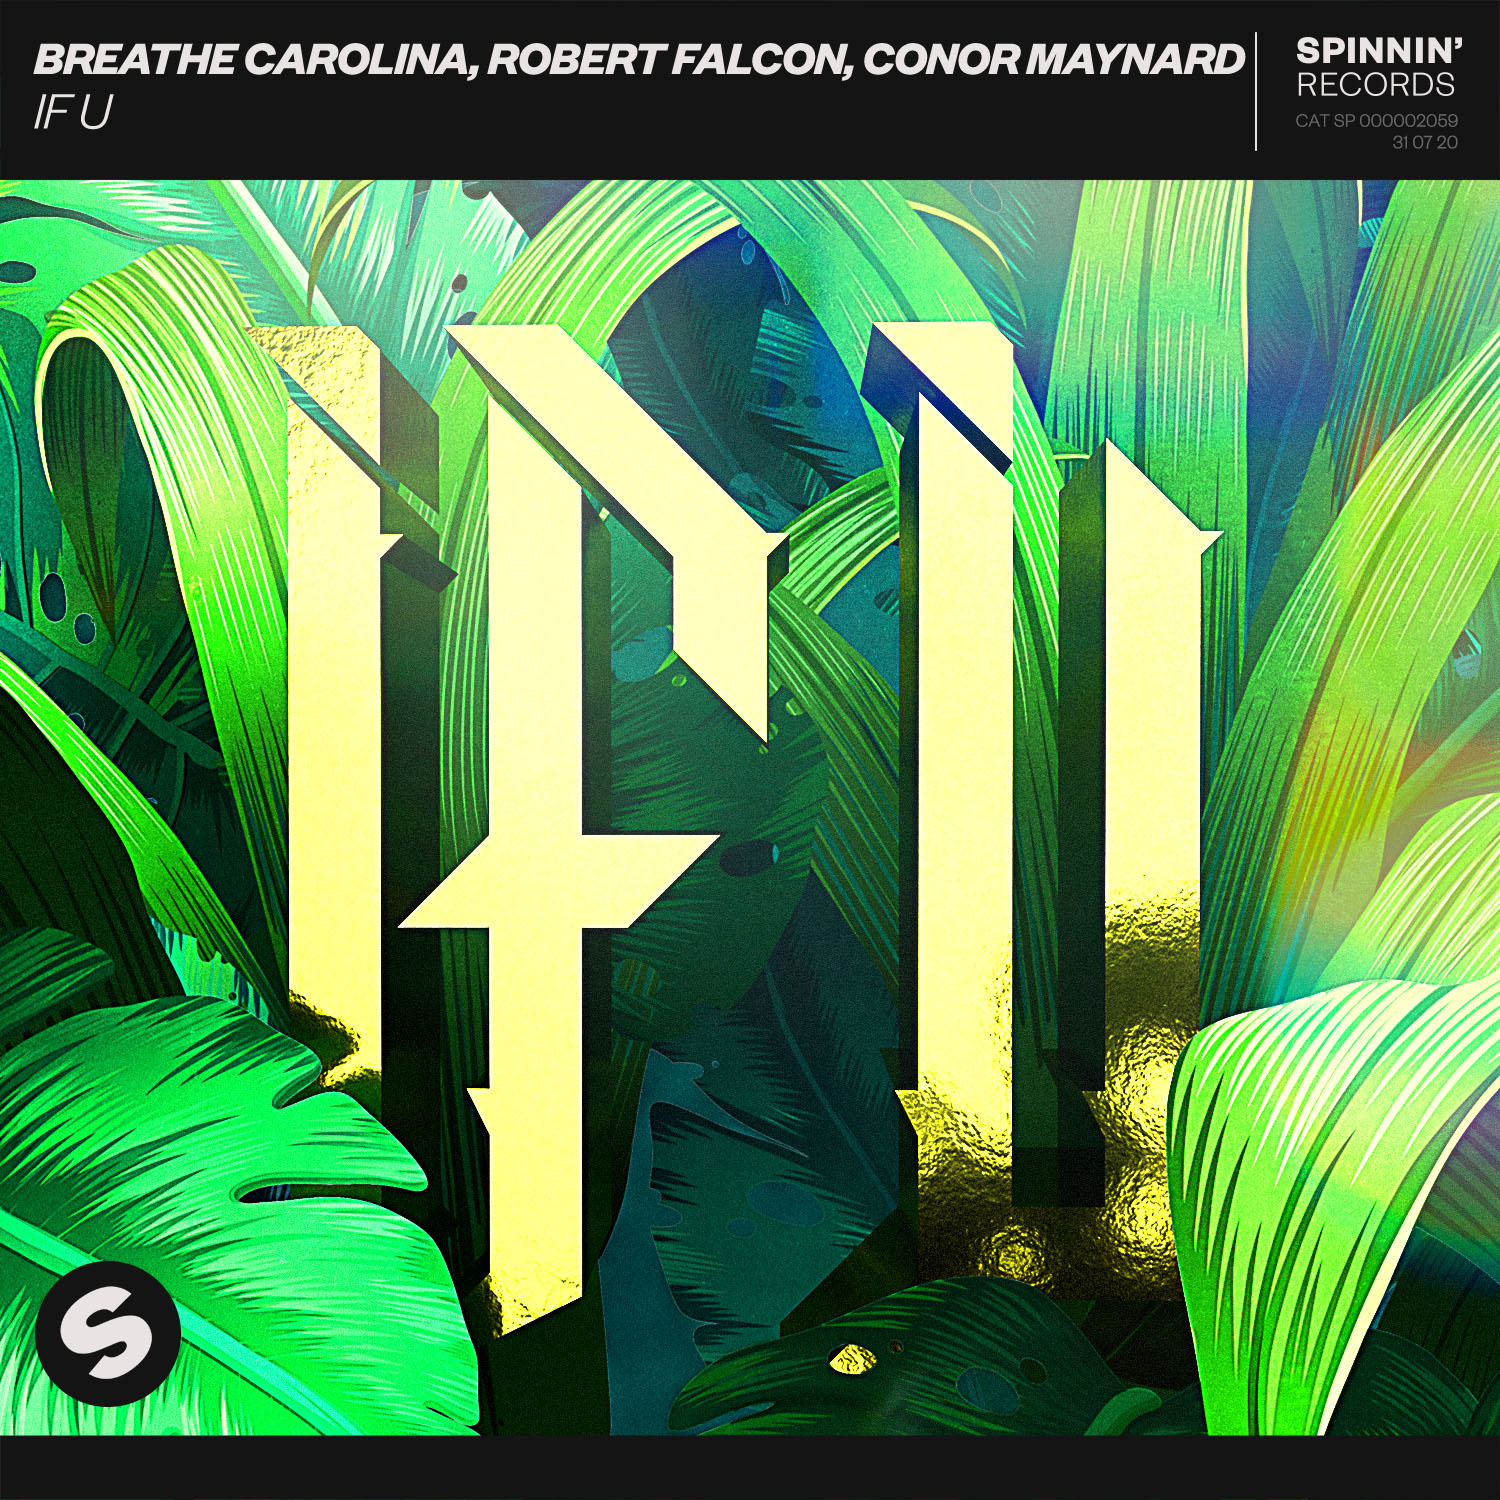 Breathe Carolina, Robert Falcon, Conor Maynard – IF U